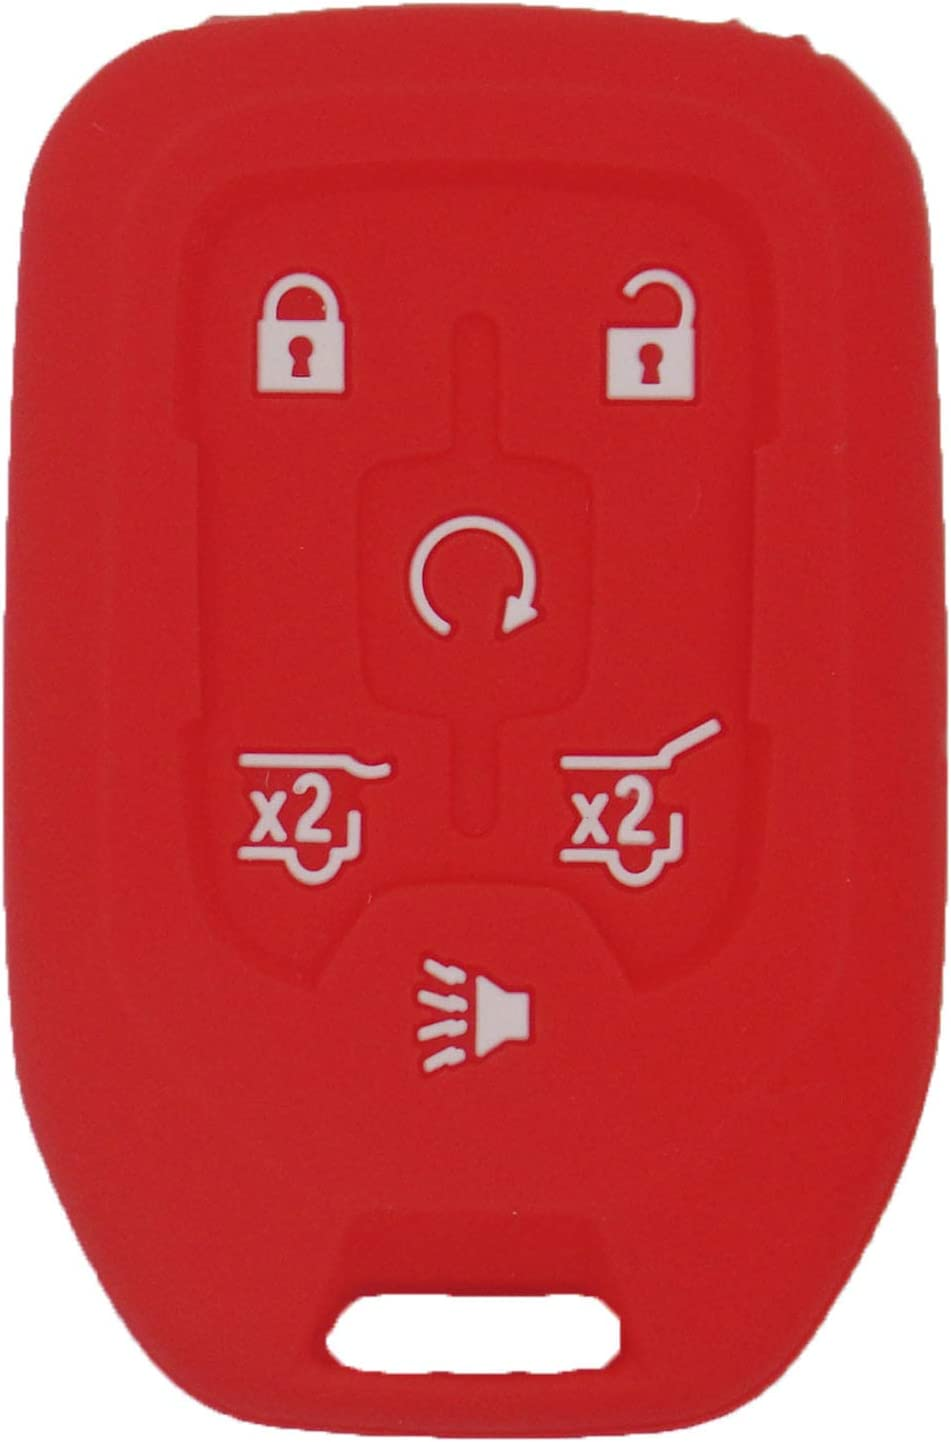 LemSa 2Pcs Rubber 6 Buttons Key Fob Cover Case Remote Keyless Protector Bag Holder Compatible with Chevrolet Tahoe Suburban GMC Yukon XL 2015-2019 Red Pink